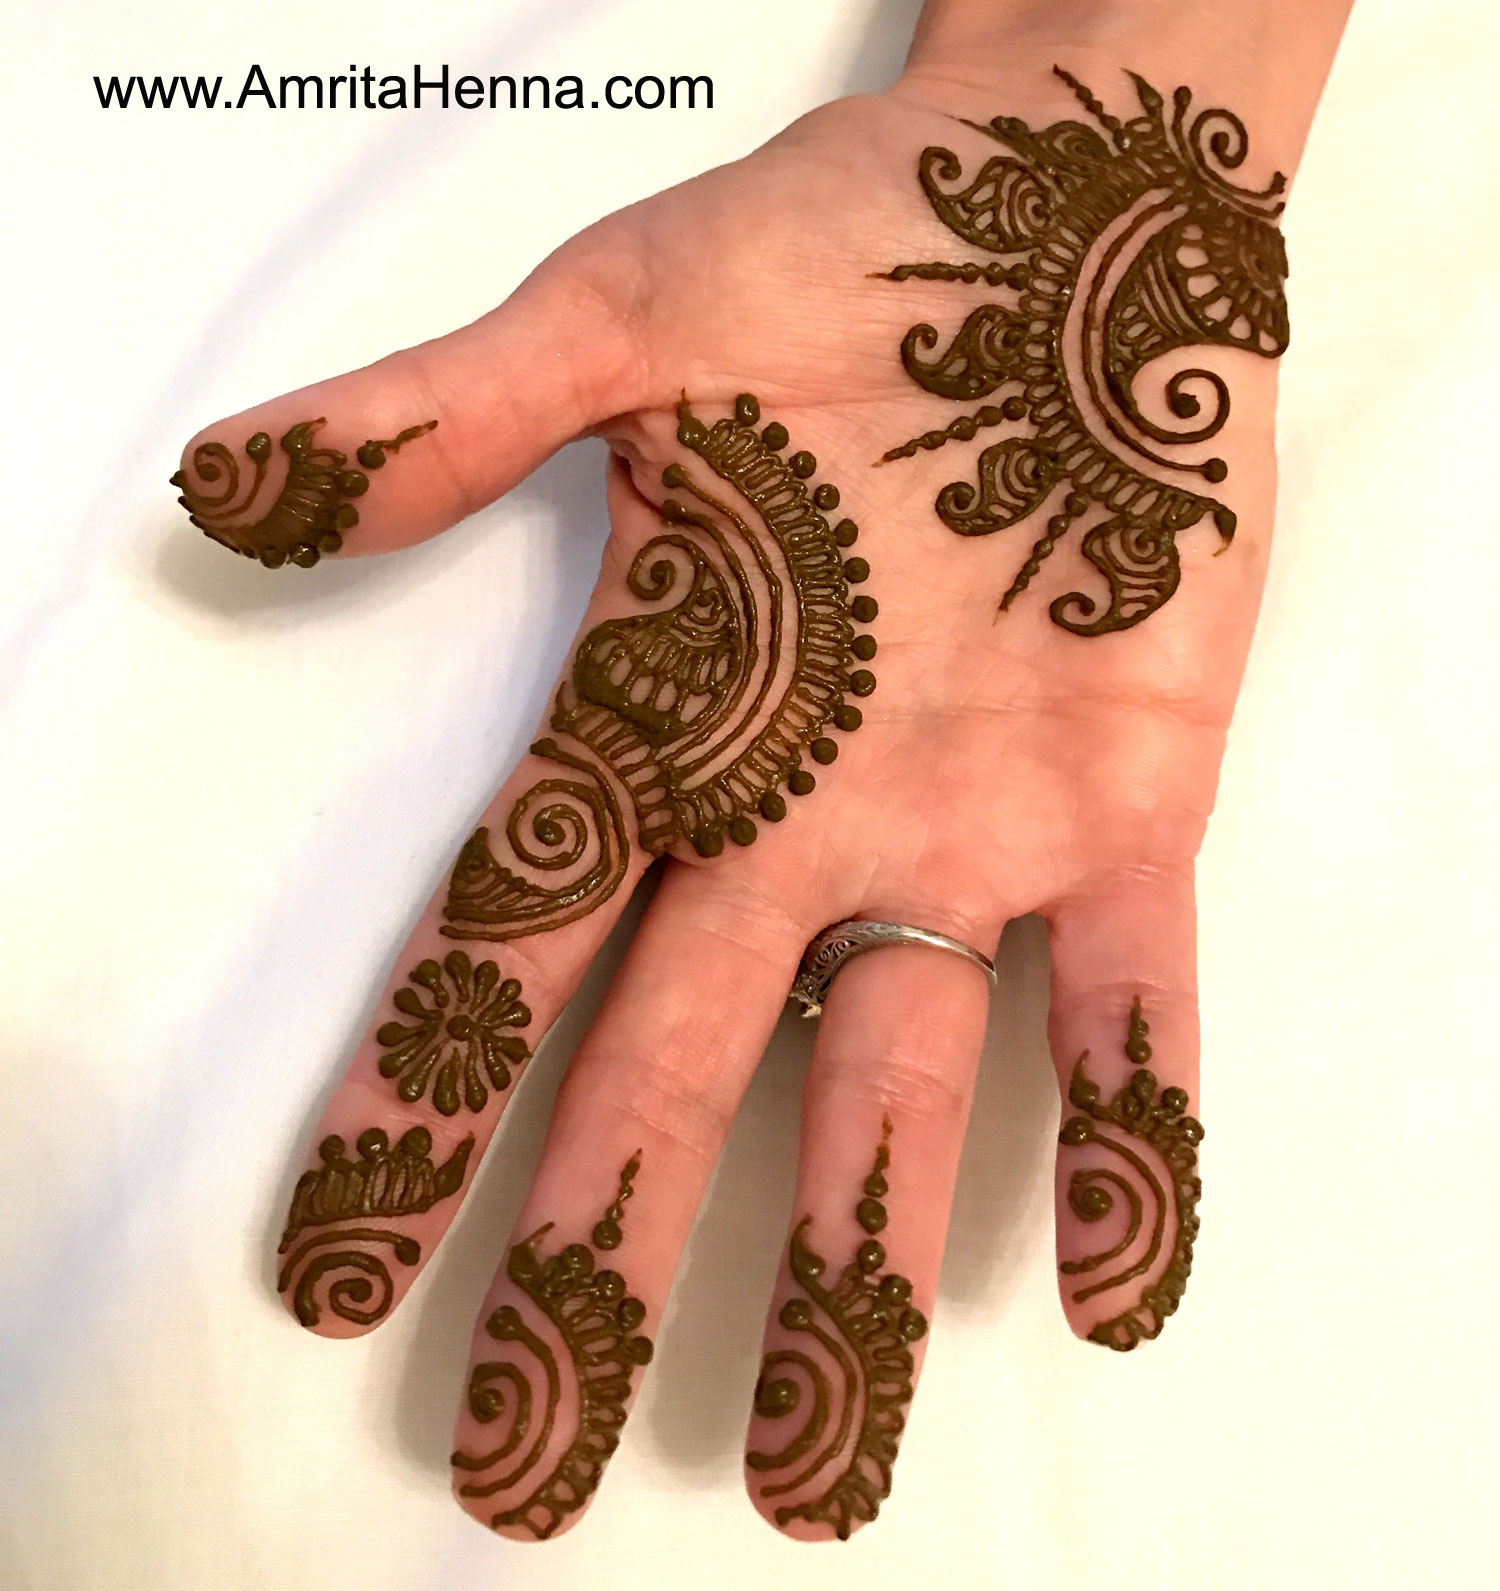 TOP 10 PARTY HENNA DESIGNS - 10 BEST MEHNDI DESIGNS FOR A BACHELORETTE PARTY - 10 STUNNING BACHELORETTE PARTY MEHENDI DESIGNS - TOP 10 MUST TRY BACHELORETTE PARTY HENNA DESIGNS - 10 COOL MEHANDI DESIGNS FOR YOU WHEN YOUR FRIENDS THROW A BACHELORETTE PARTY - GIRLS NIGHT HENNA DESIGNS - HENNA DESIGNS FOR A GIRLS PARTY - TOP 10 GIRLS PARTY MEHNDI DESIGNS - TOP 10 HENNA DESIGNS FOR THE BRIDE-TO-BE BASH - 10 BEAUTIFUL HENNA DESIGNS FOR YOUR BACHELORETTE BASH - WEDDING HENNA DESIGN IDEAS - TOP 10 PARTY MEHNDI IDEAS